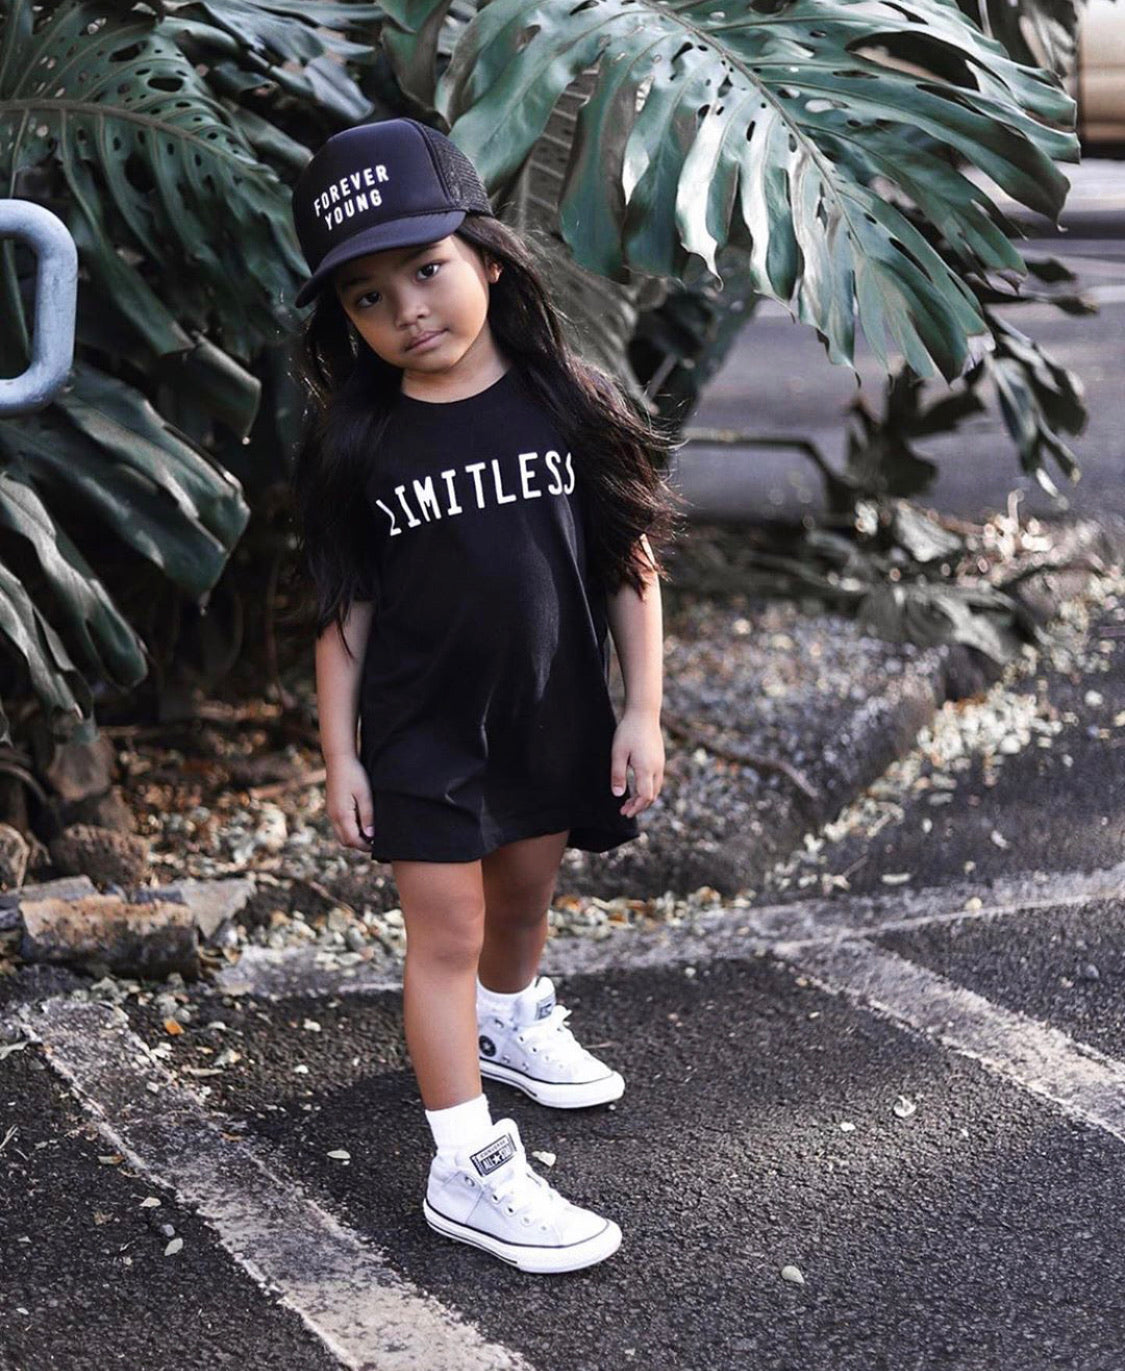 Limitless (Toddler)